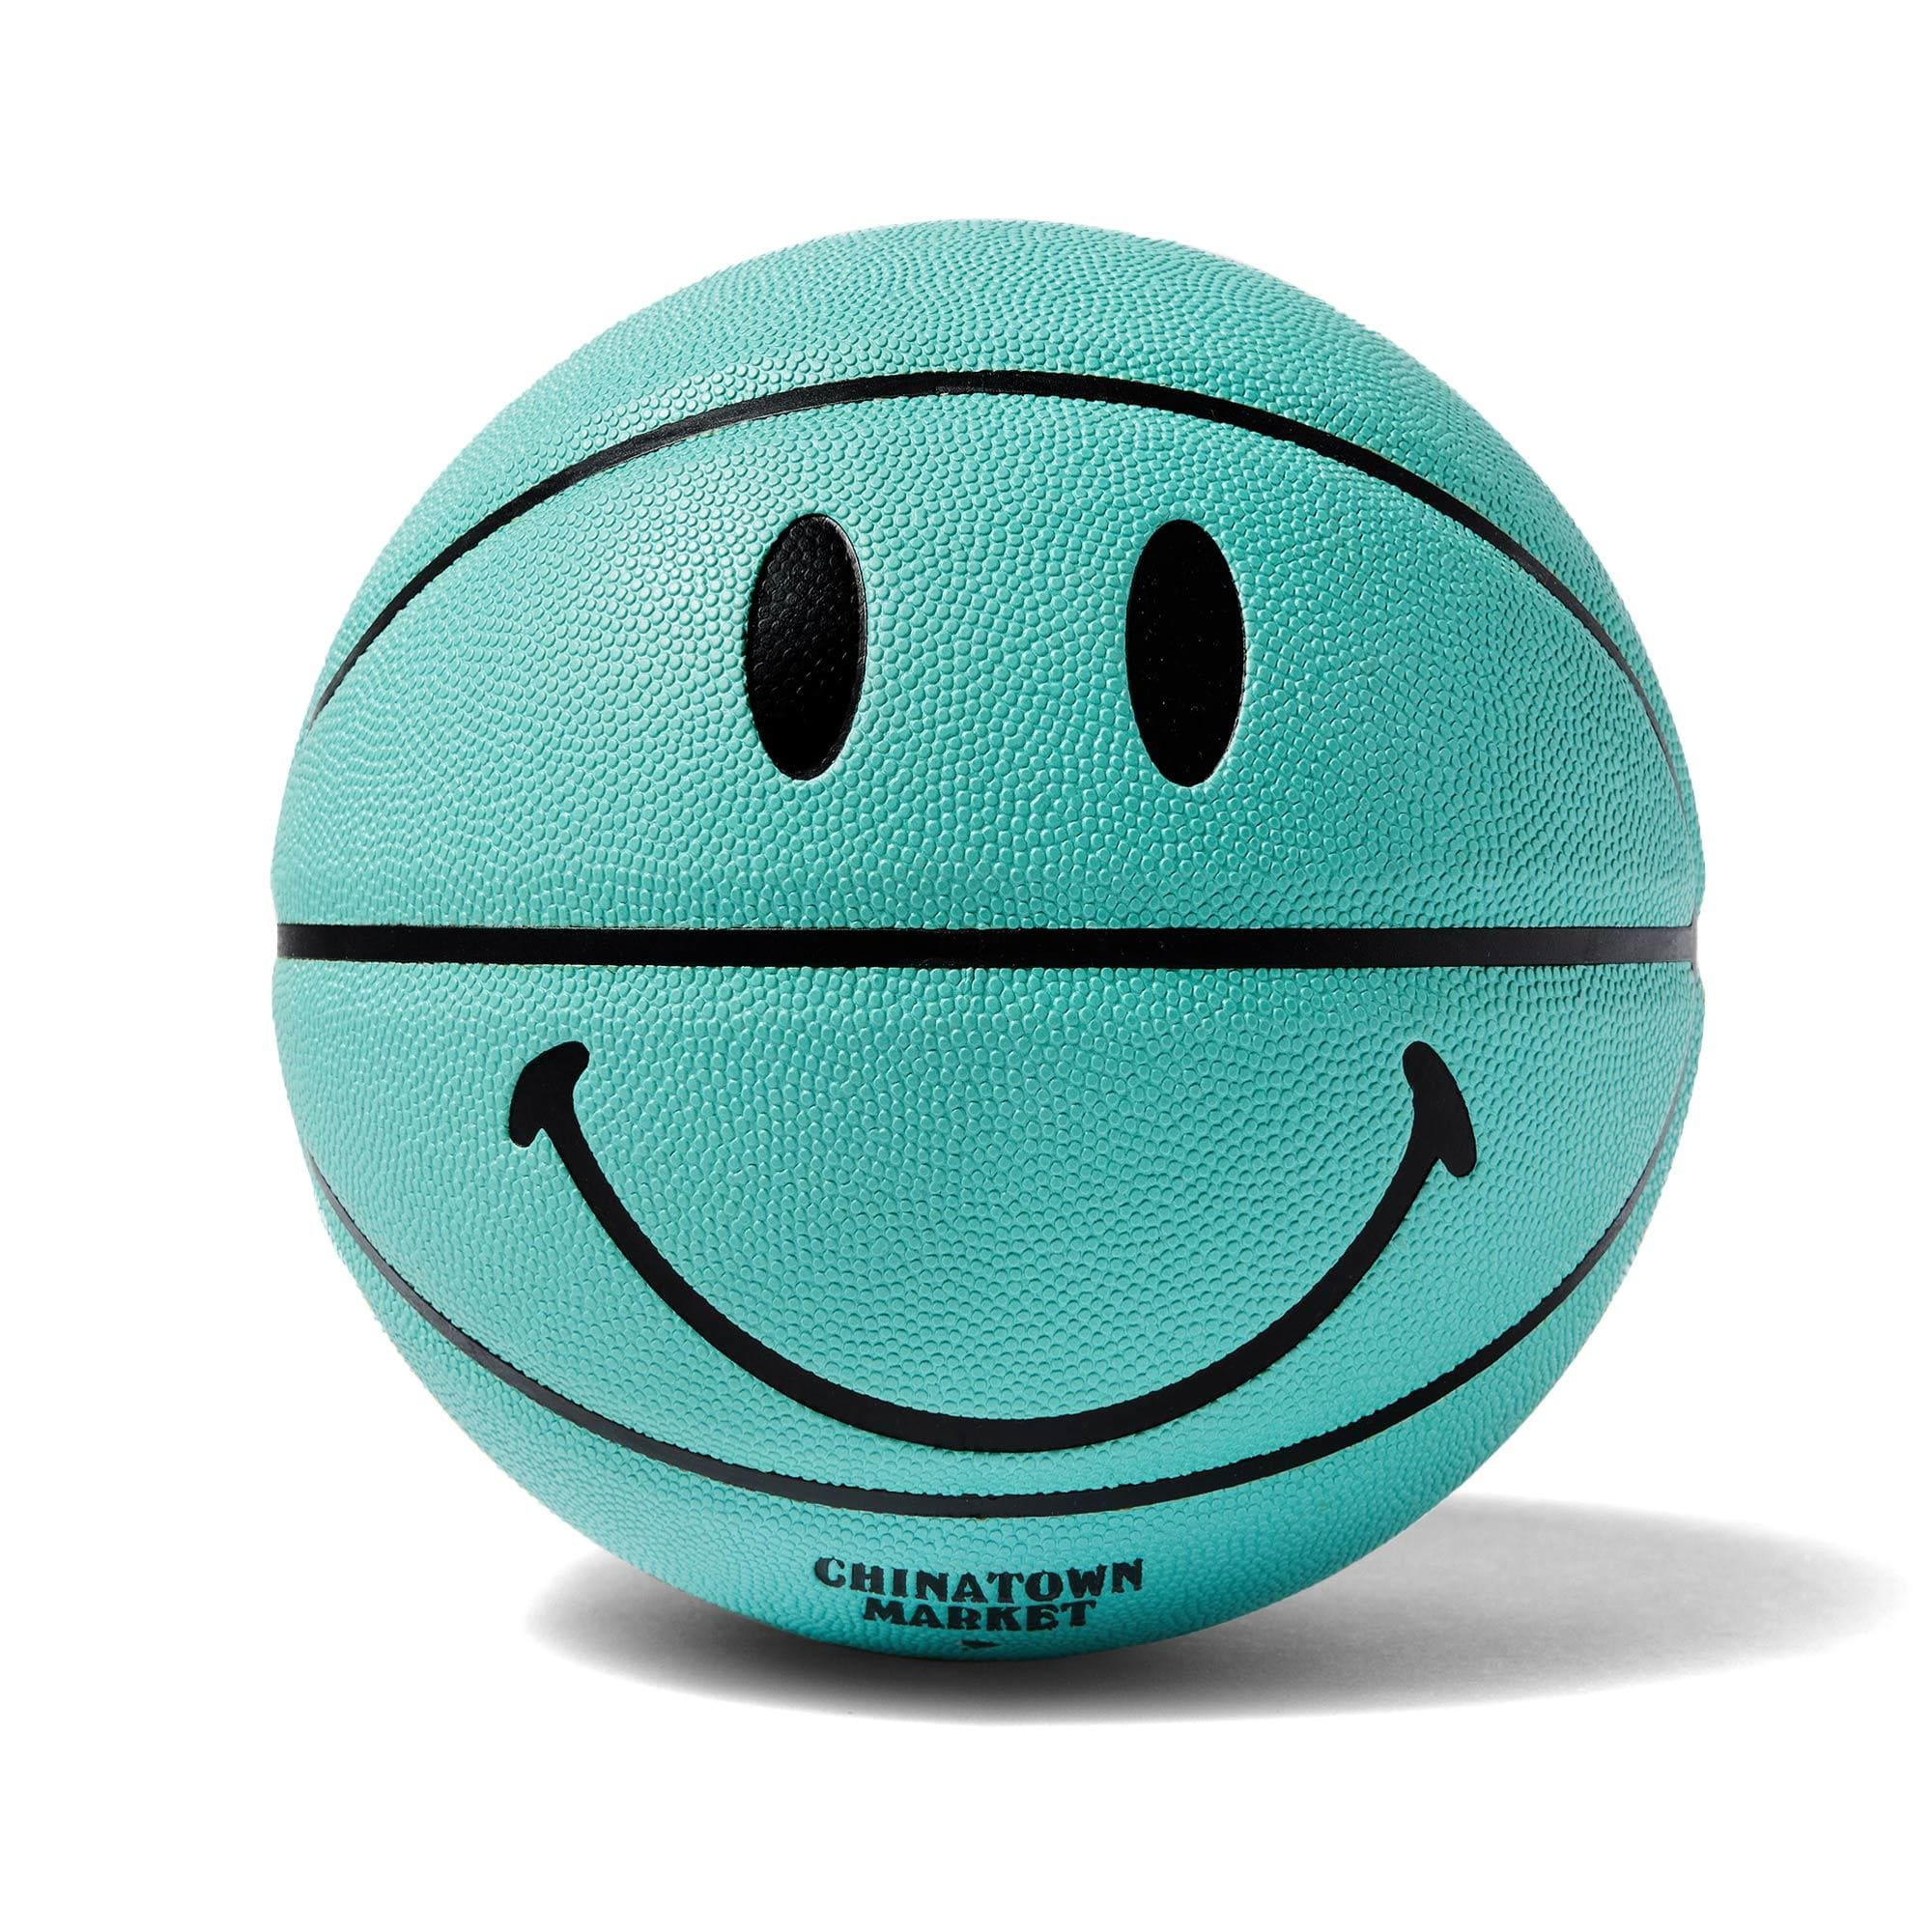 China Town Market Accessories Smiley Breakfast Basketball